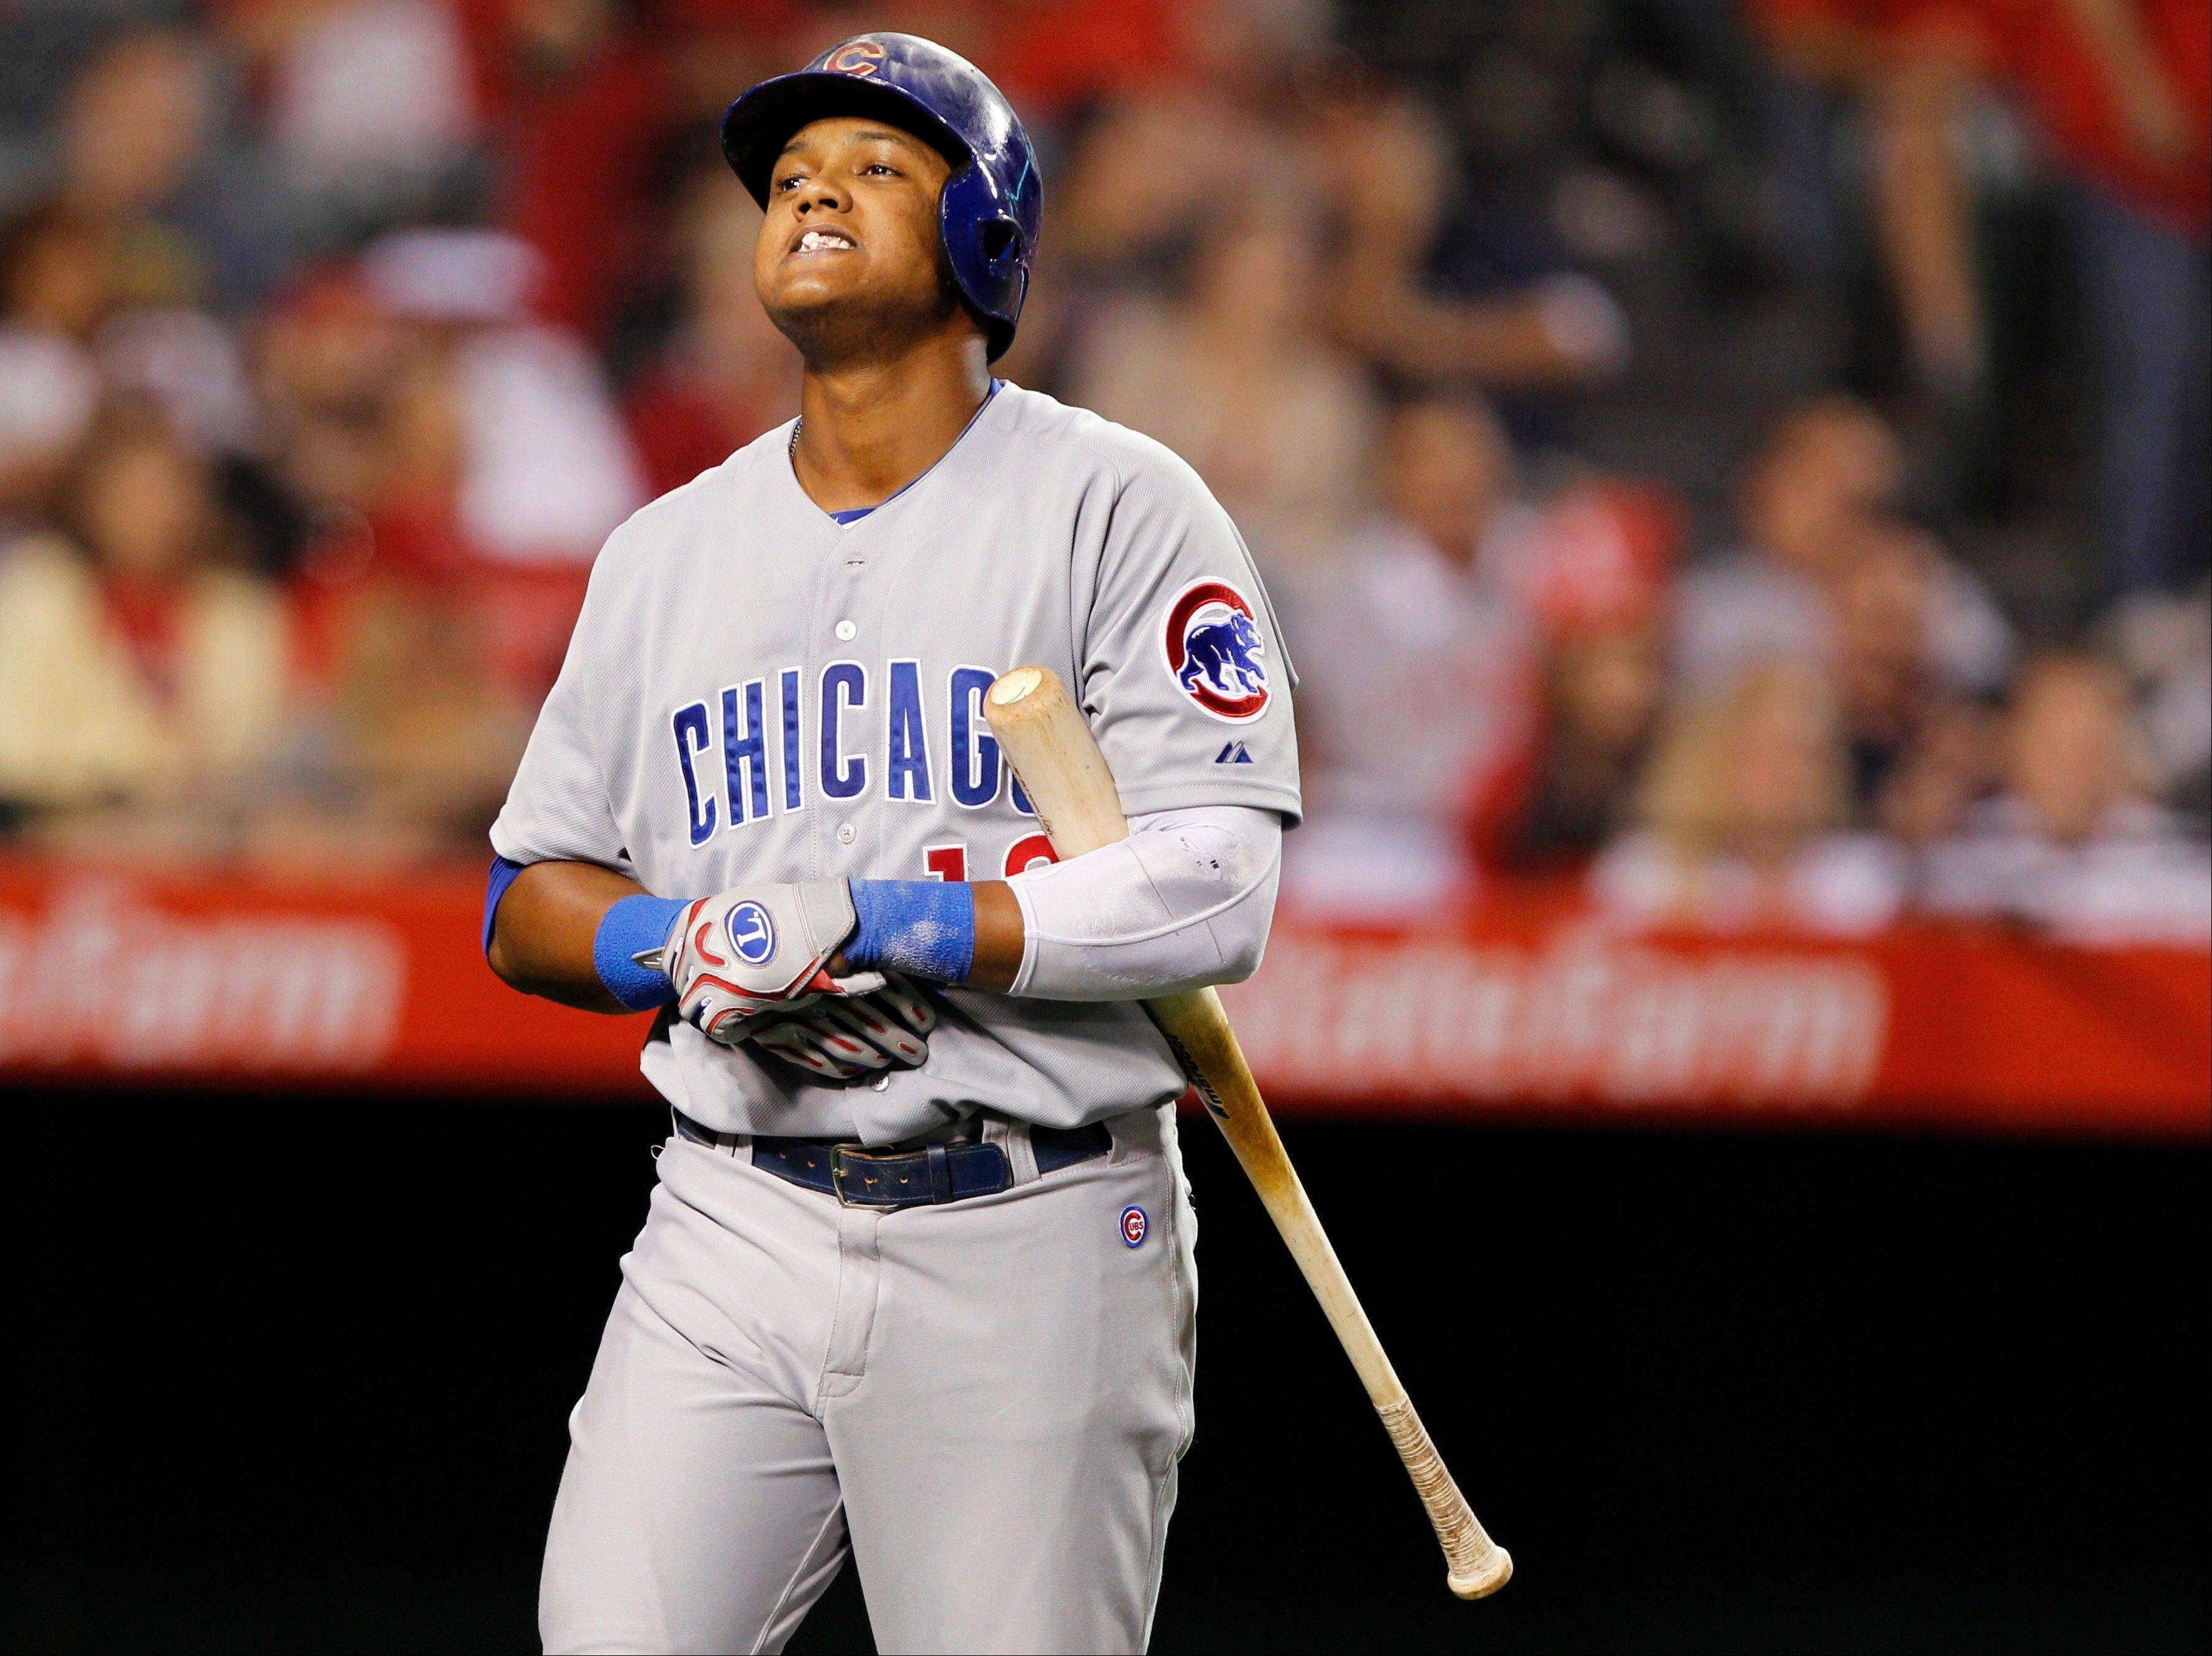 Chicago Cubs shortstop Starlin Castro reacts to hitting a foul ball for an out against the Los Angeles Angels in the sixth inning during an interleague baseball game Tuesday, June 4, 2013, in Anaheim, Calif.